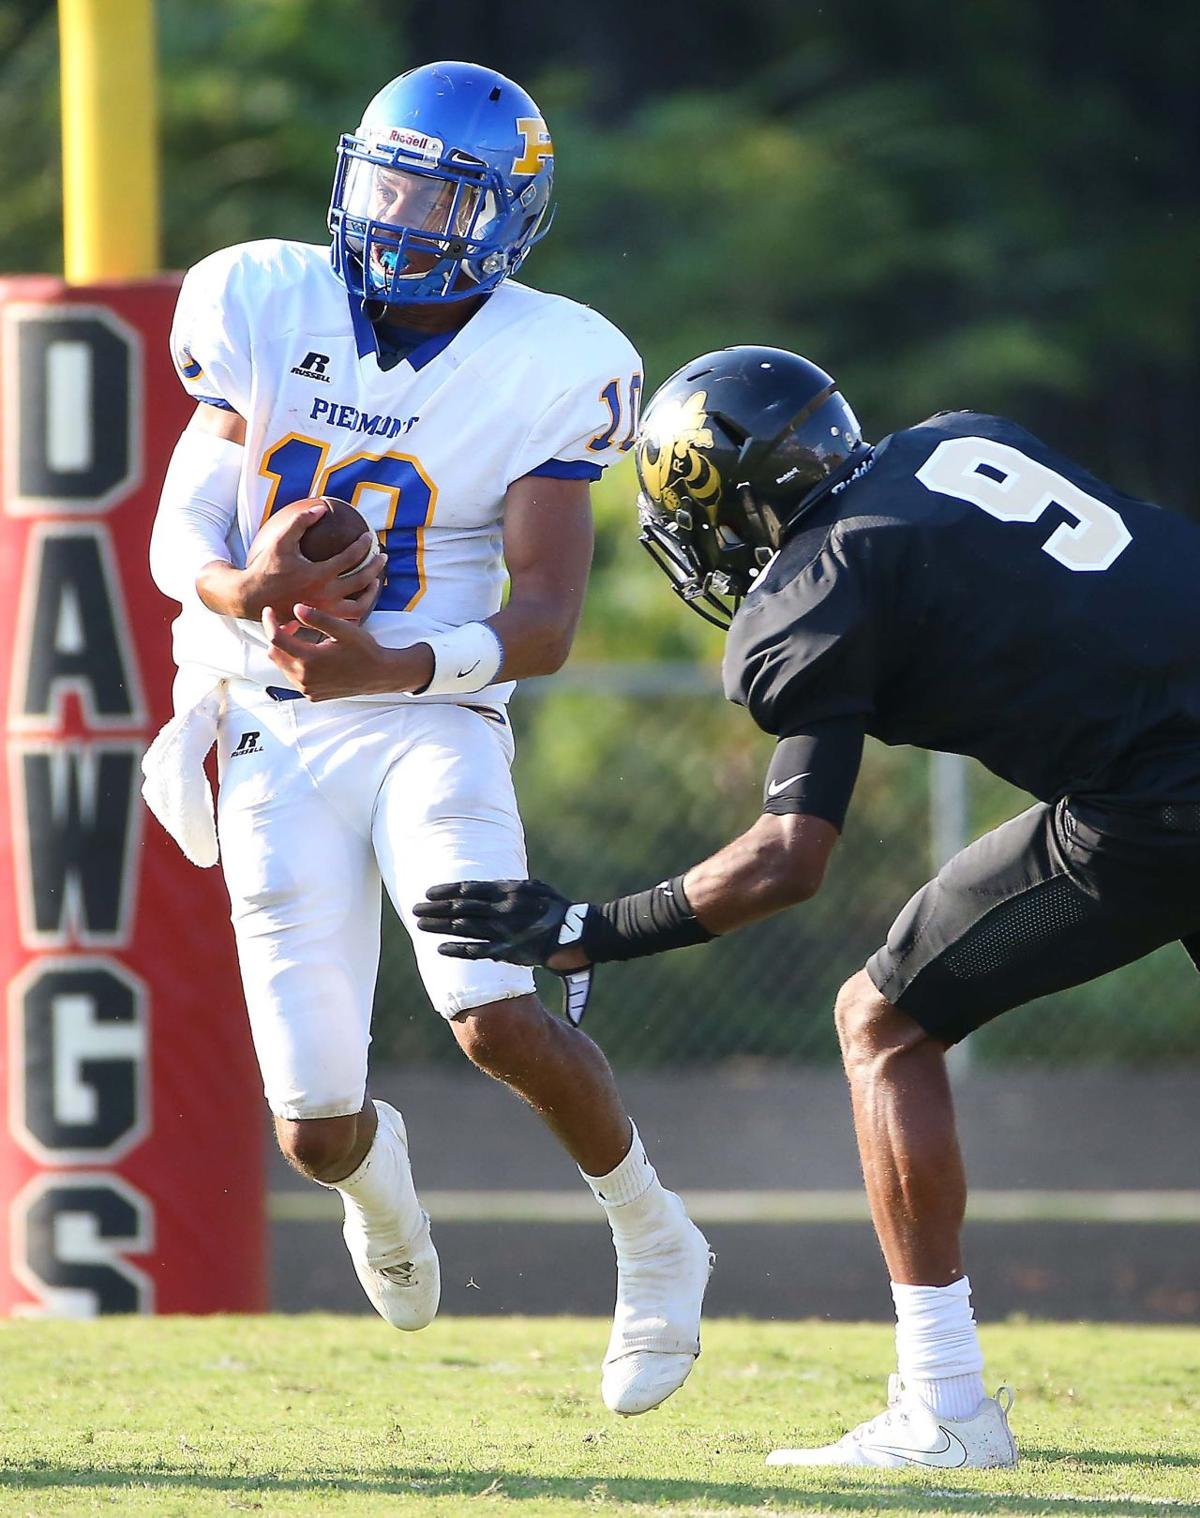 Piedmont At Rockmart Football Game Slideshows Annistonstar Com